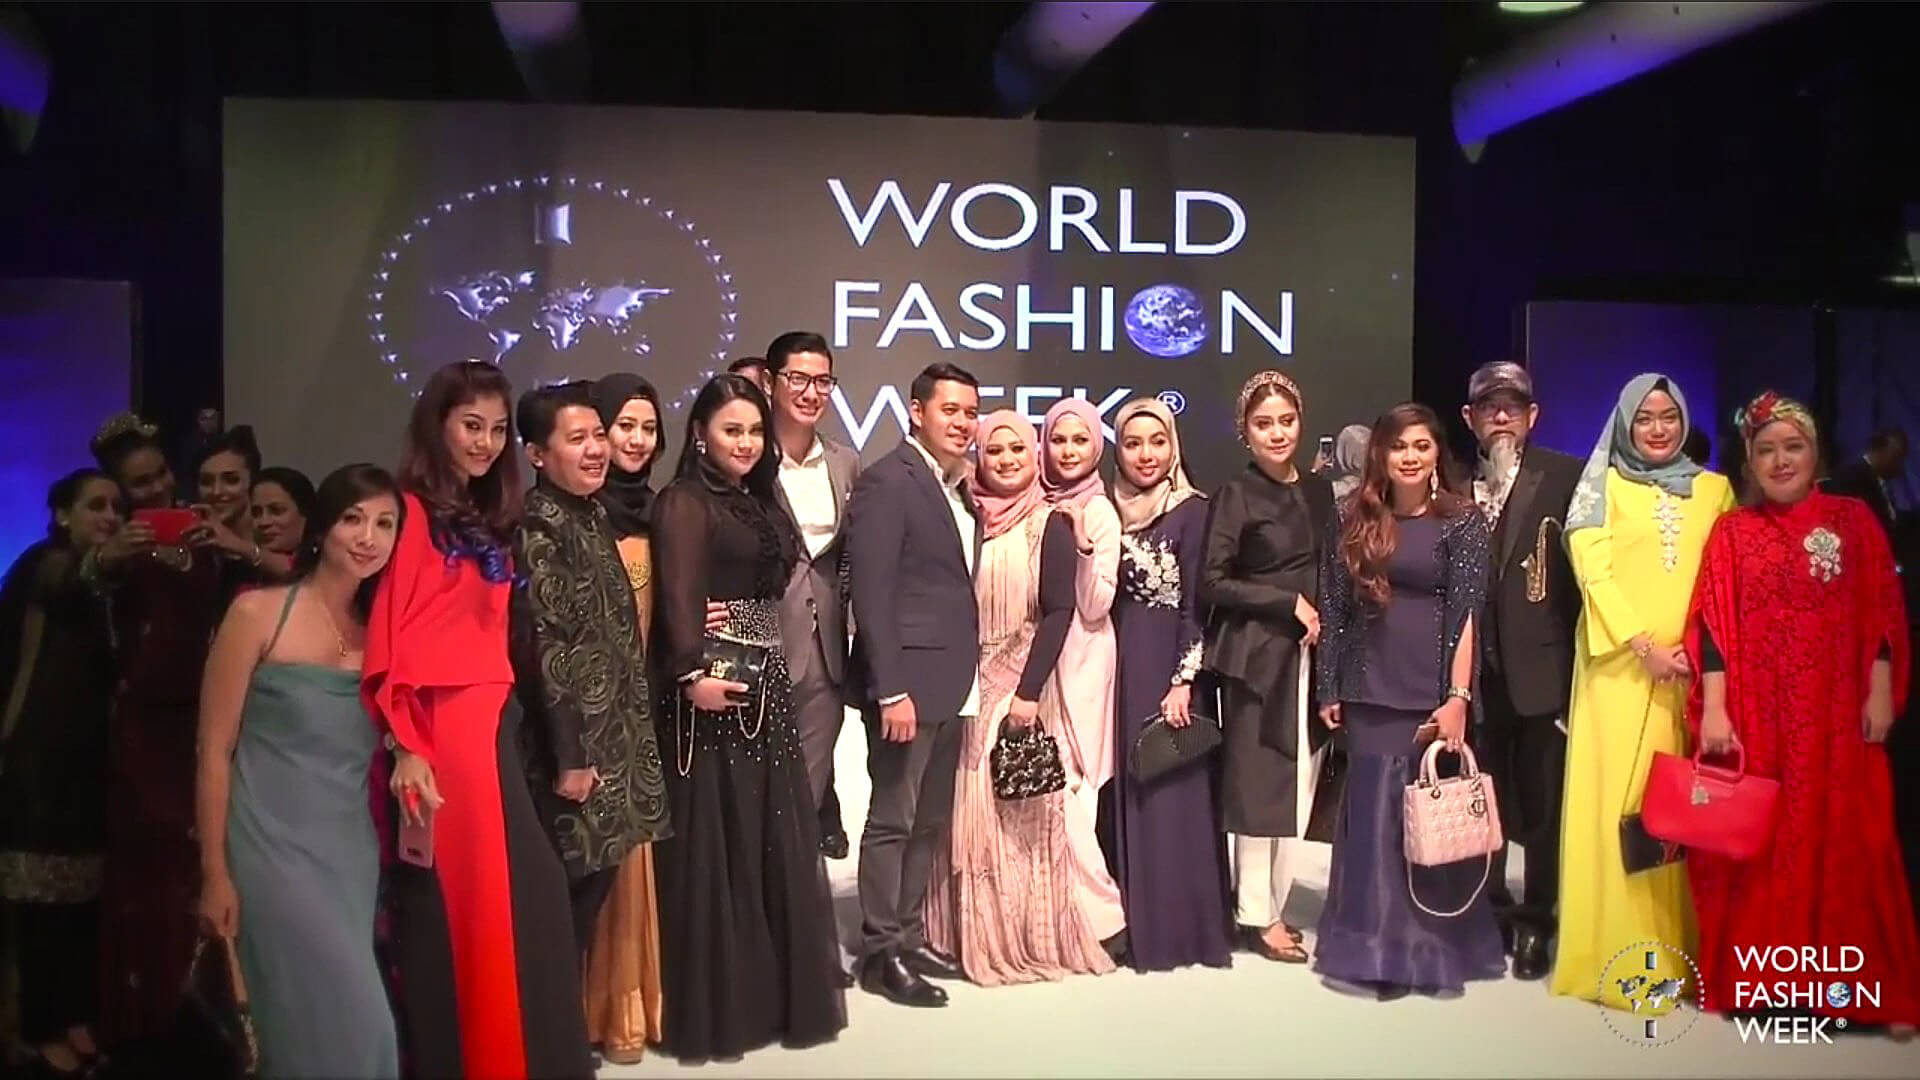 World Fashion Week<sup>®</sup> Malaysia 2017 celebrated cultural diversity &amp; the beauty, power &amp; artistic global movement of fashion